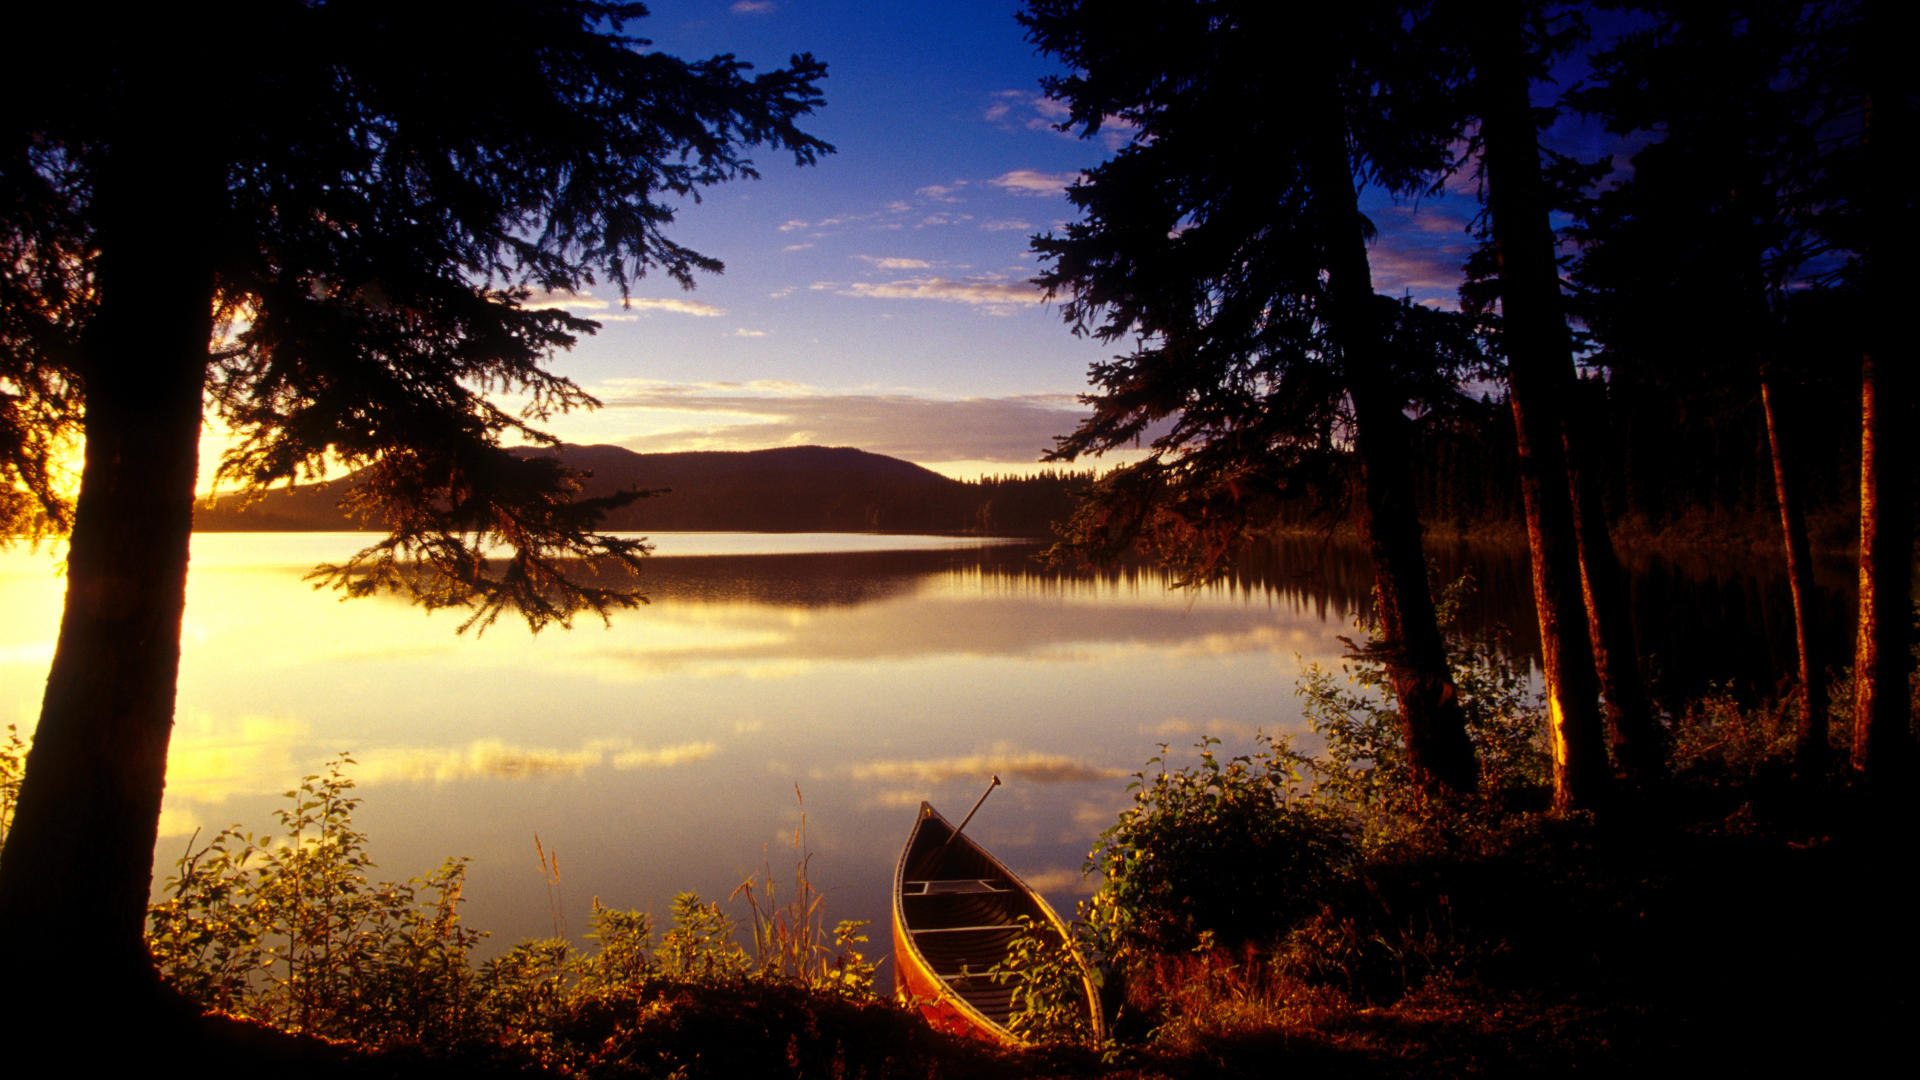 Great-wallpapers-cool-backgrounds-outdoors-canada